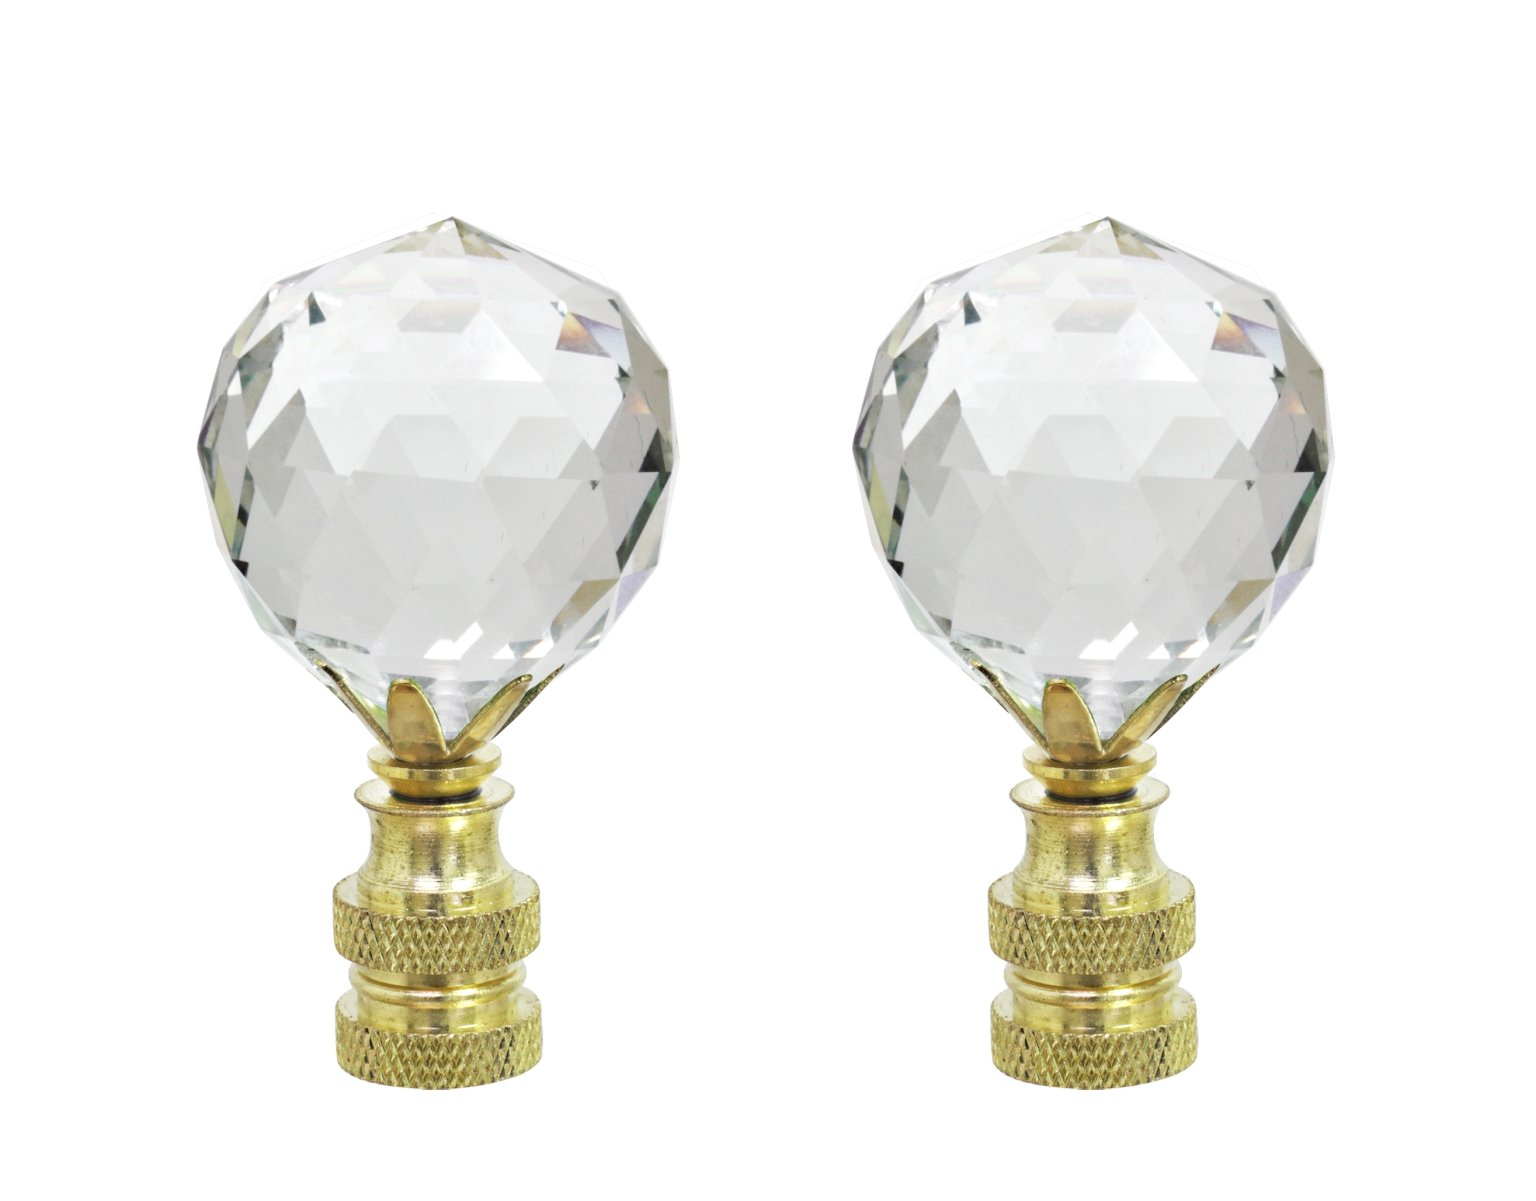 Aspen Creative 24007-12 Clear Faceted Crystal Lamp Finial in Brass Plated Finish, 2 1/4'' Tall (2 Pack),